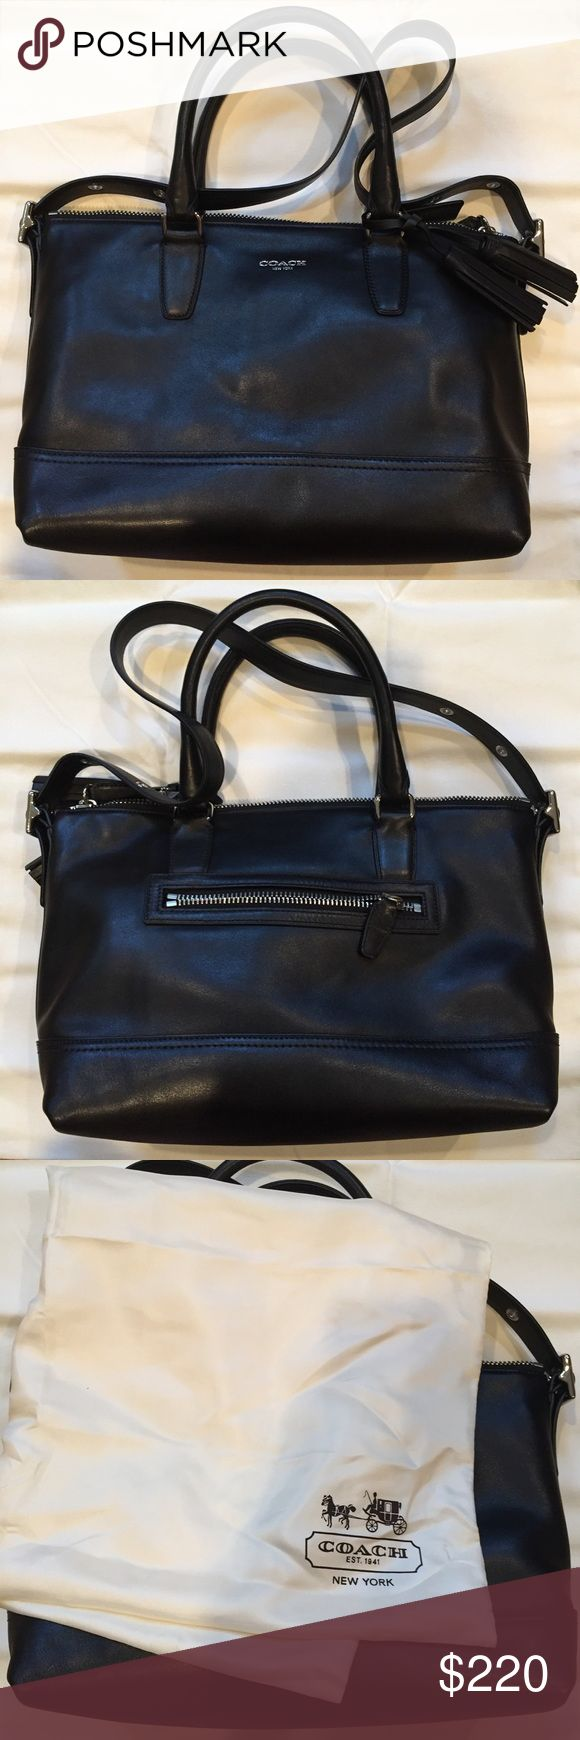 Coach Legacy Molly Satchel NWT. New gorgeous smooth black leather Coach Legacy Molly Satchel. Comes with dust bag. Open to offers. Coach Bags Satchels